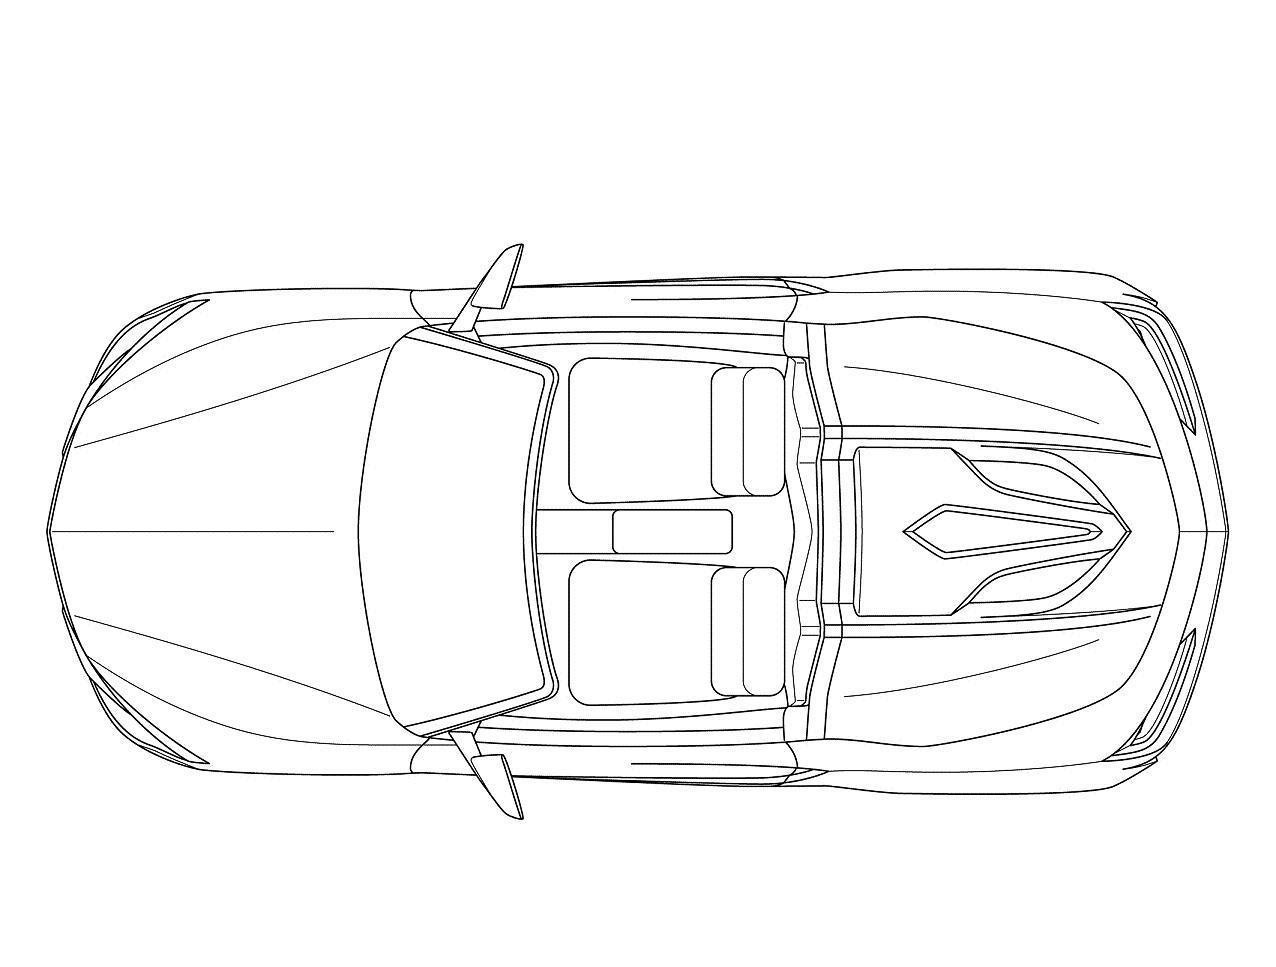 Lamborghini Gallardo Drawing at GetDrawings.com | Free for personal ...